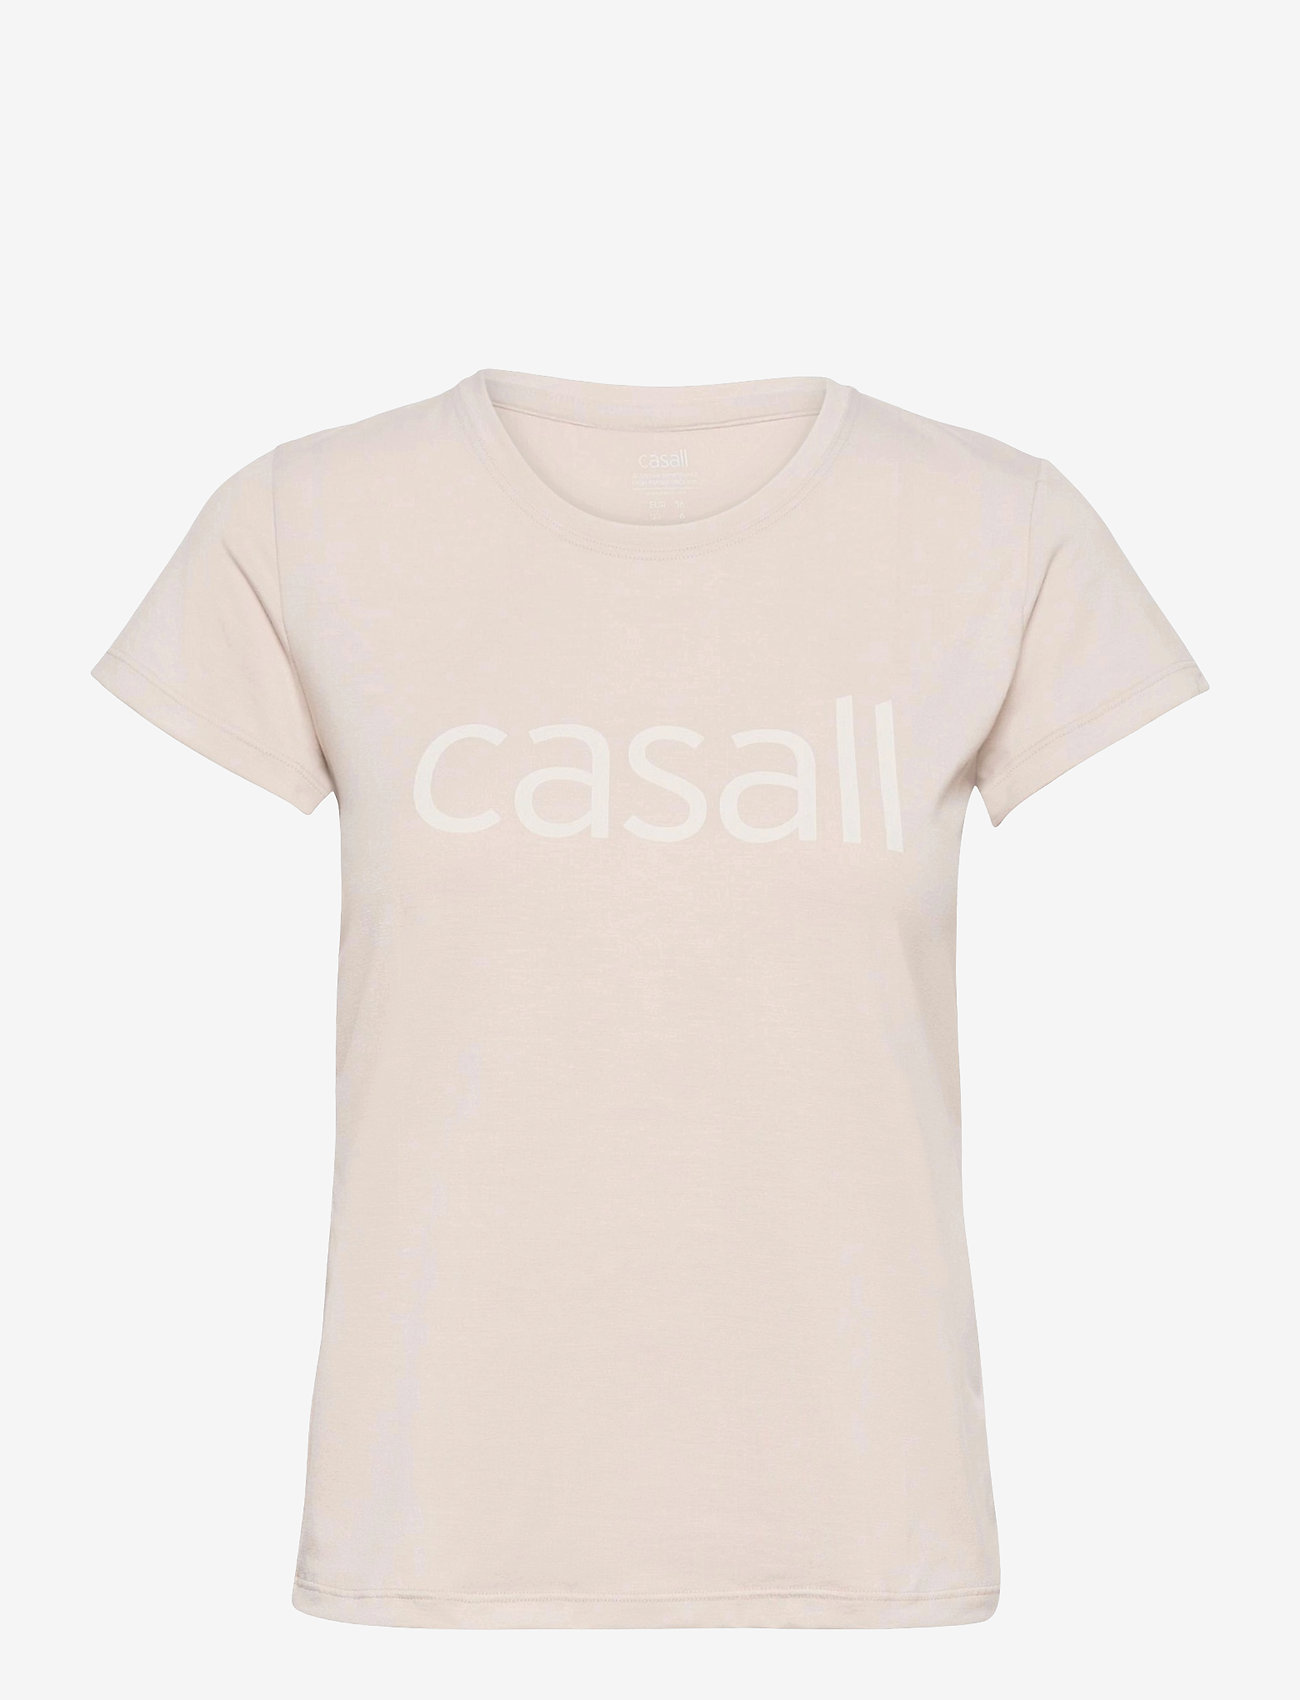 Casall - Block Logo Tee - t-shirty - warm sand - 0